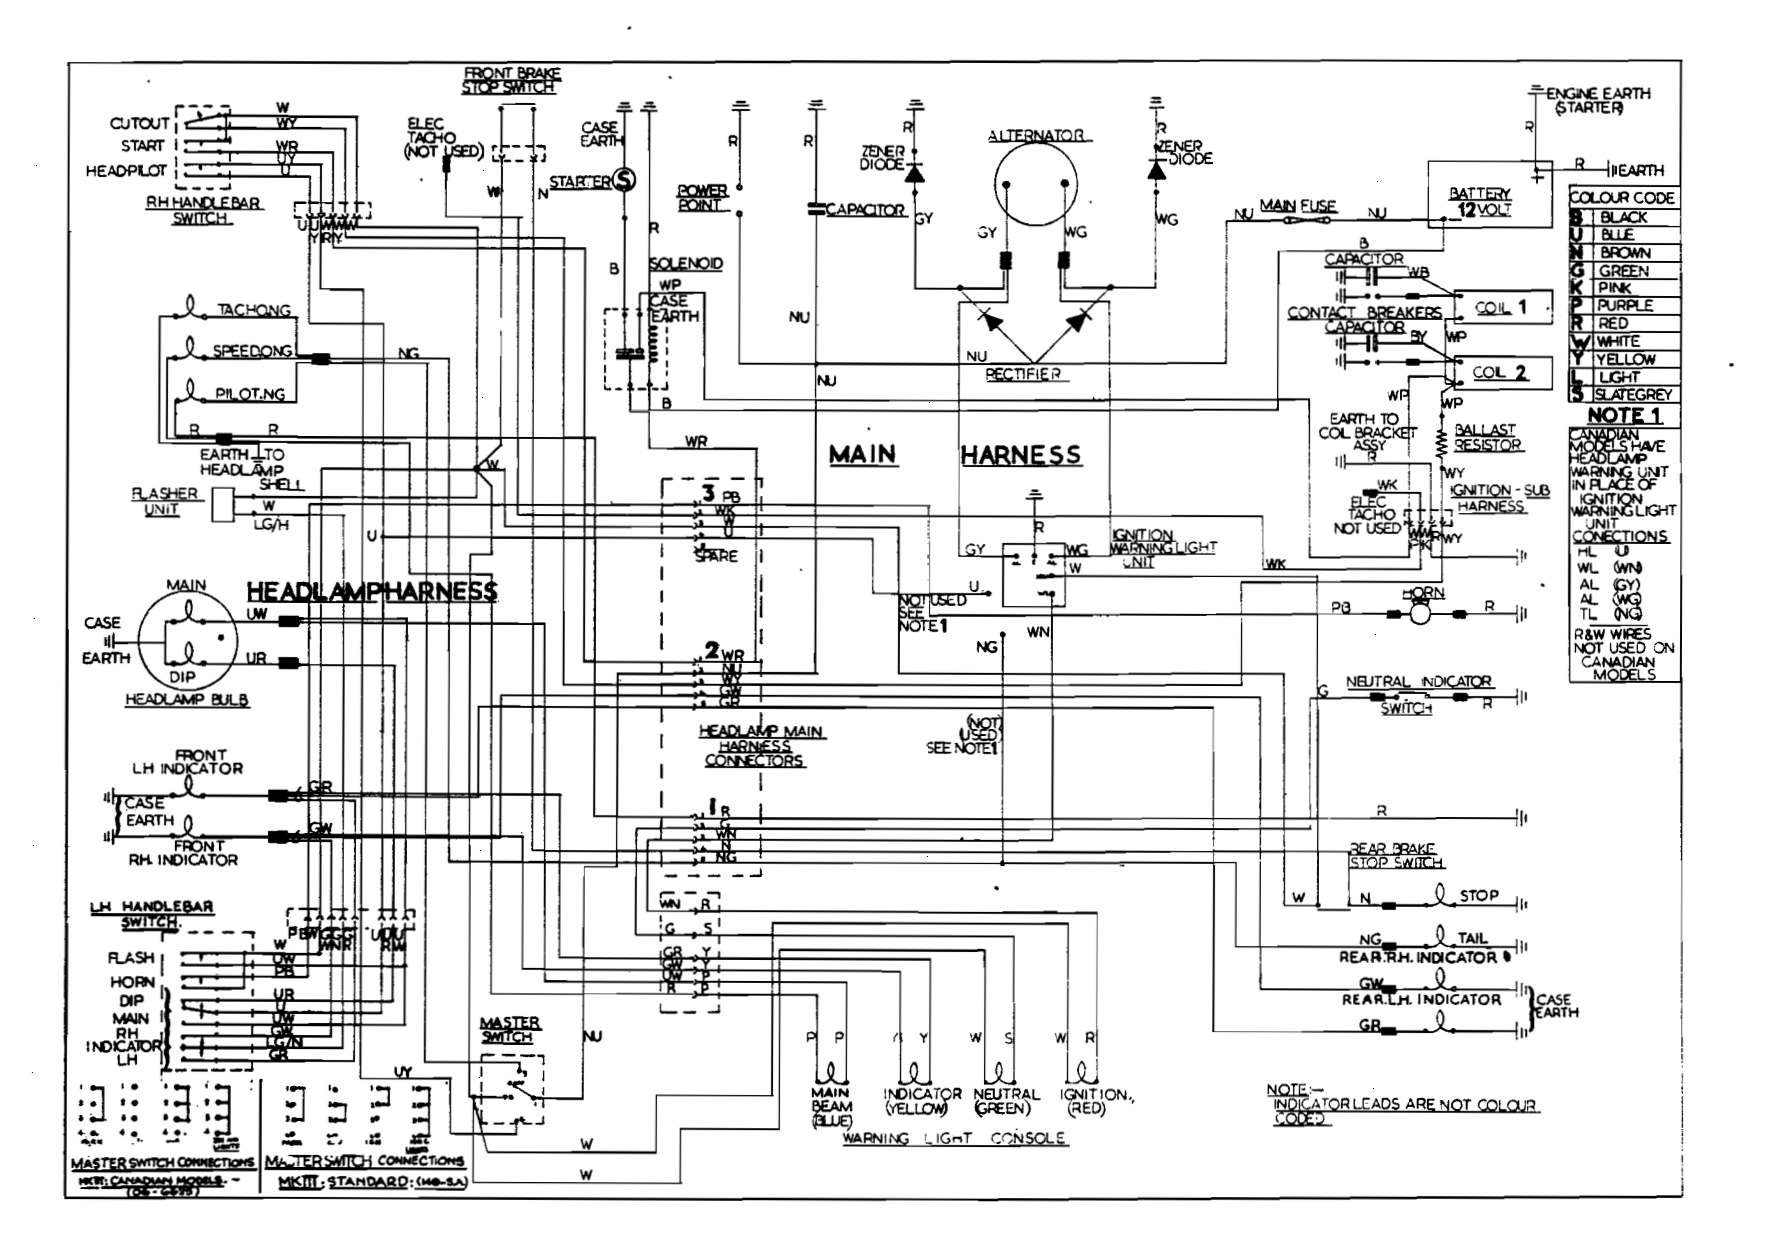 start stop wiring diagram vectra c audio dan s motorcycle various systems and diagrams click the picture for full size